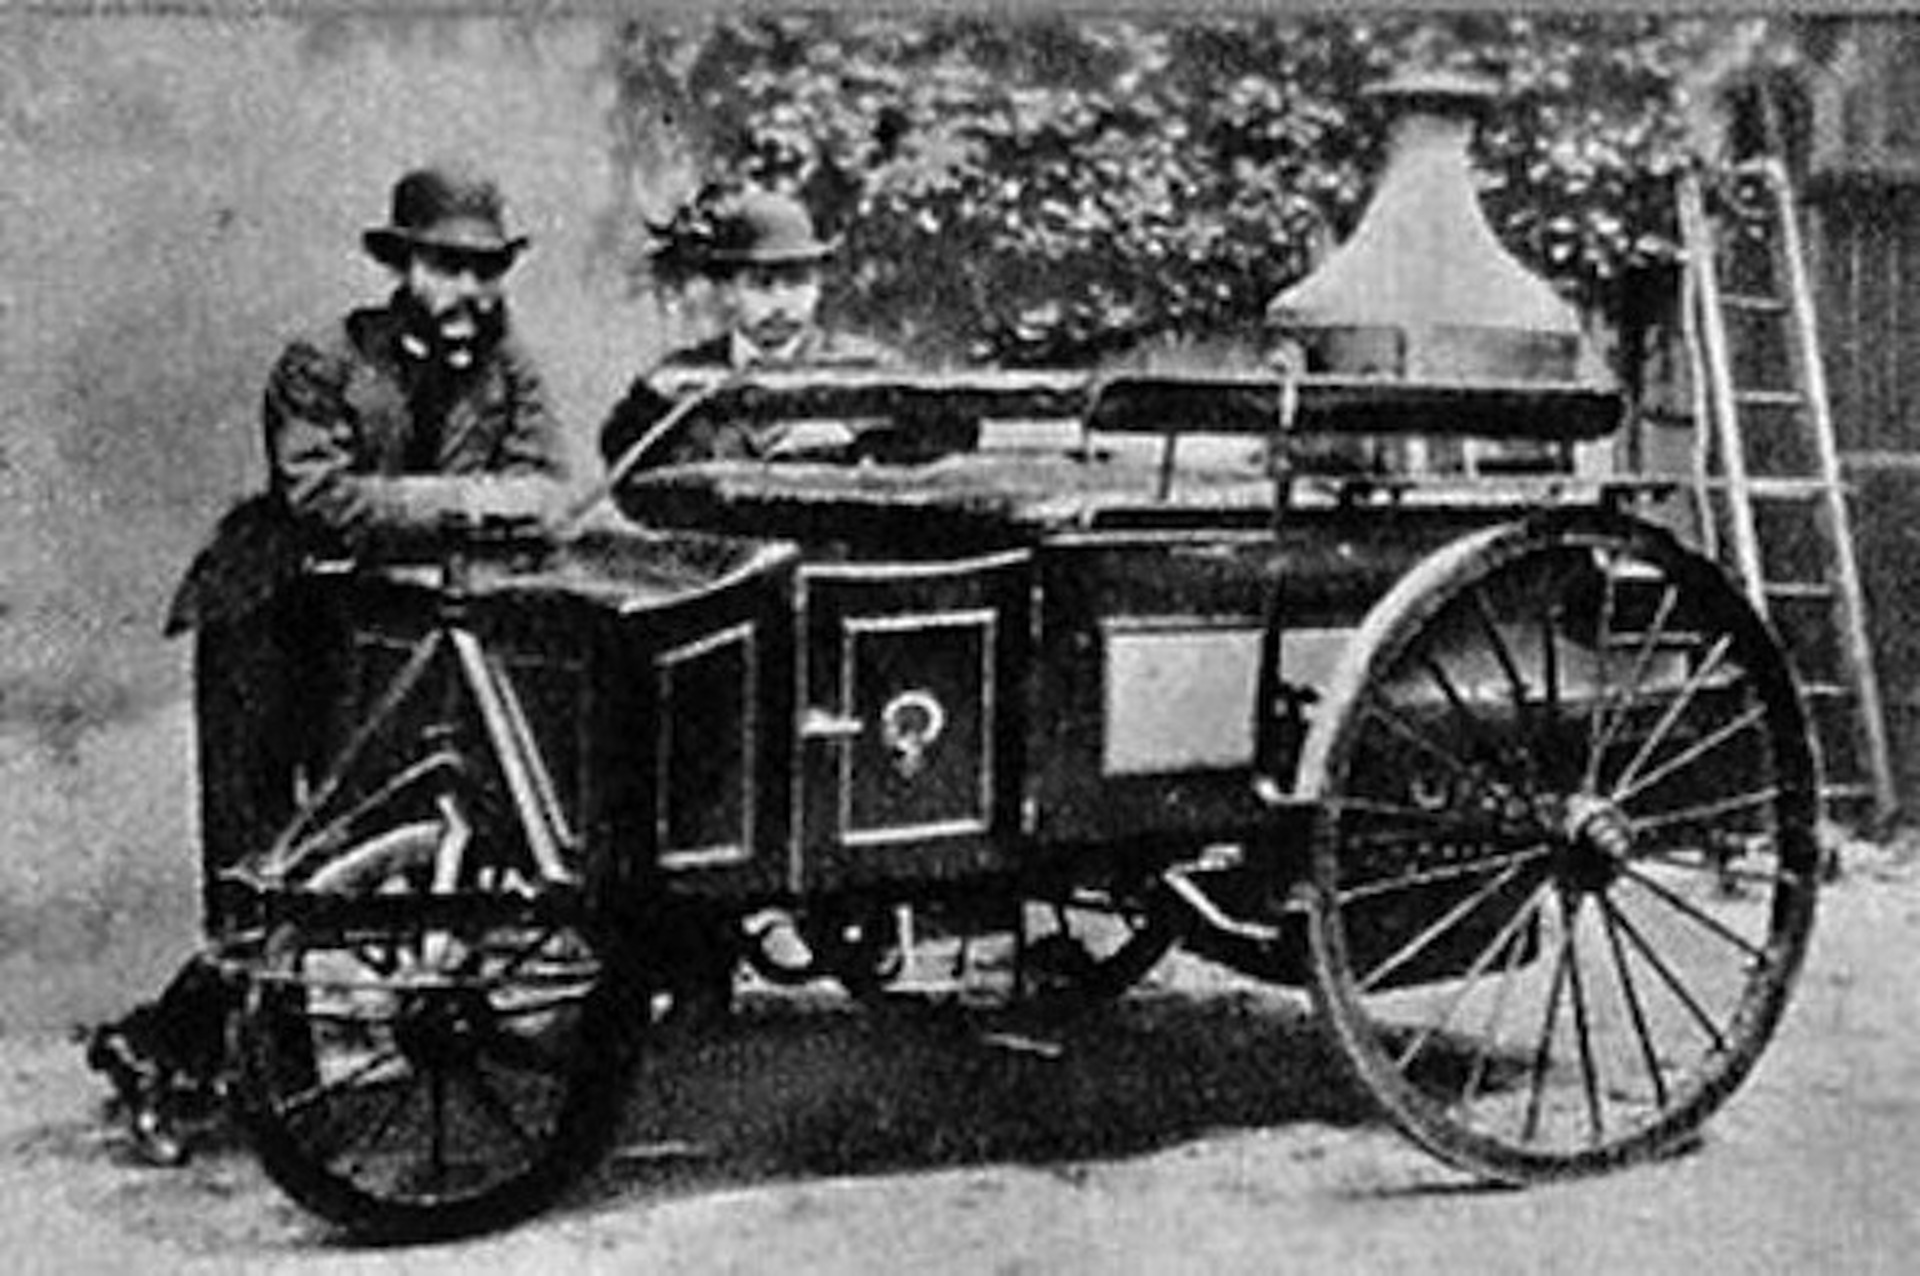 essays about electric trolley cars in the 19th century But by the late 19th century cable cars and electric  mid 19th century provided  the birth of the streetcar suburb the early trolley allowed .